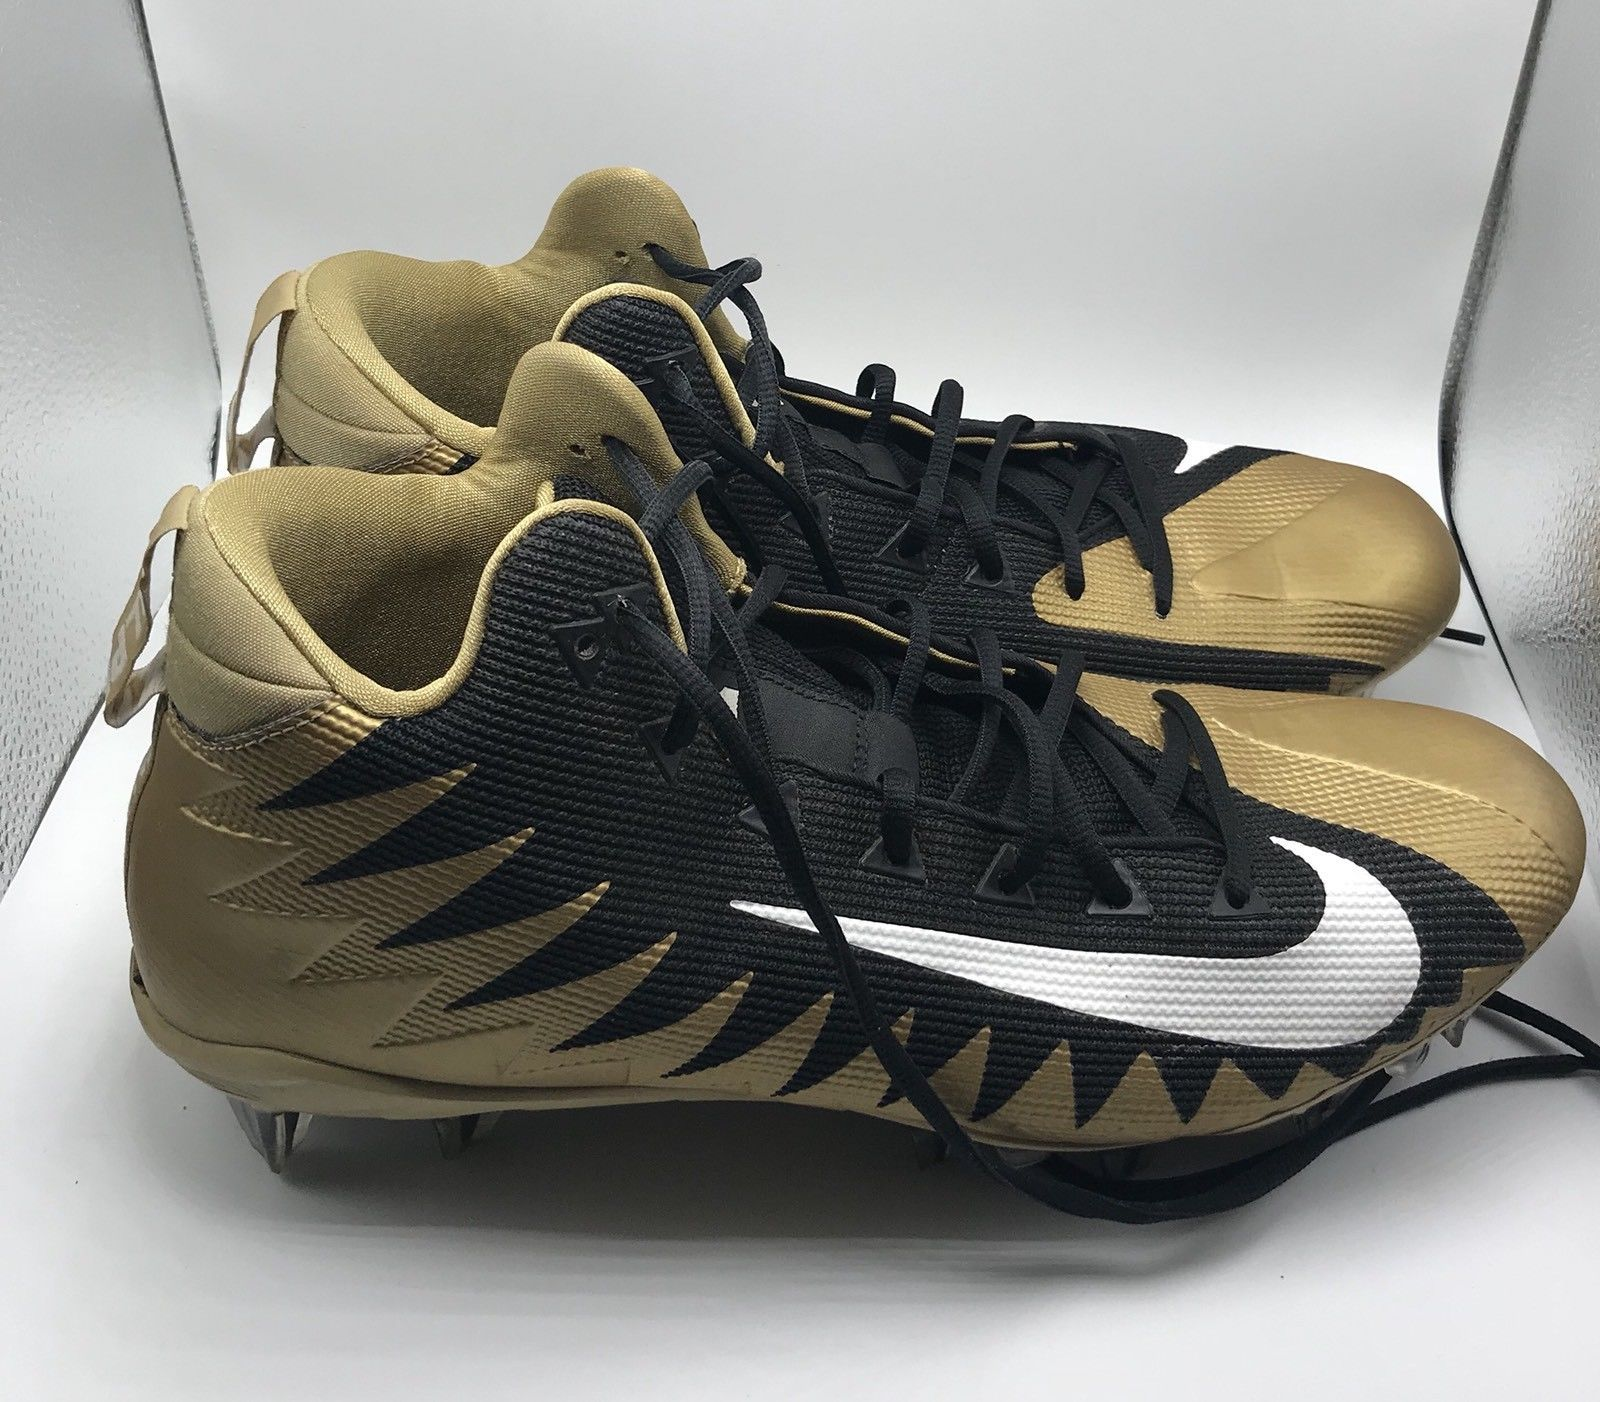 306d1bb55 Men s Cleats Nike Alpha Menace Black Gold and 50 similar items. 57